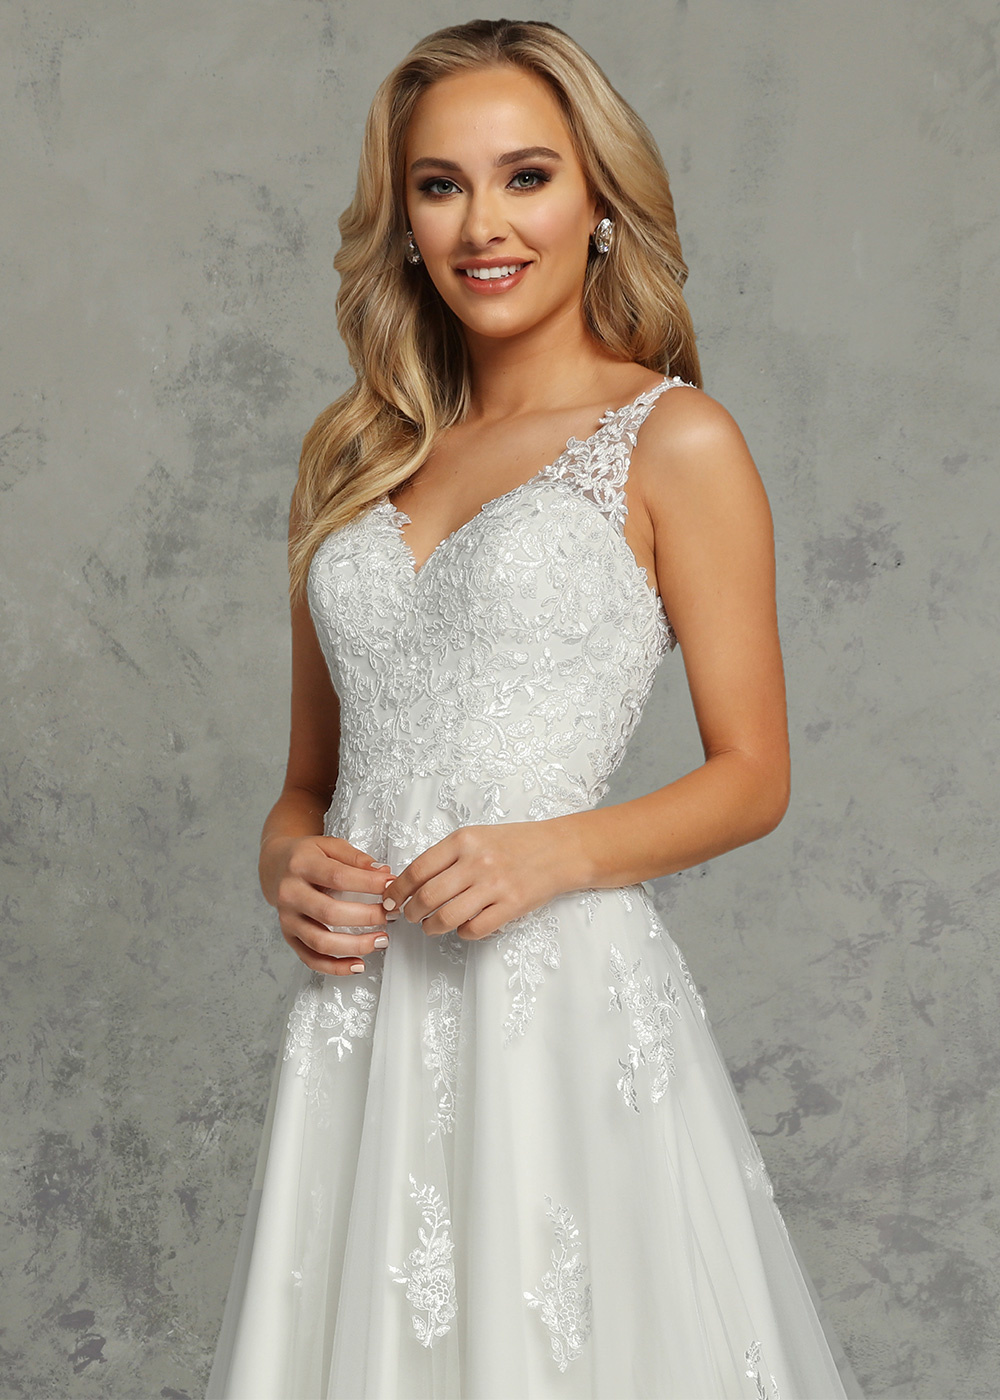 TH-Emery TH Wedding Dresses By Ashdon